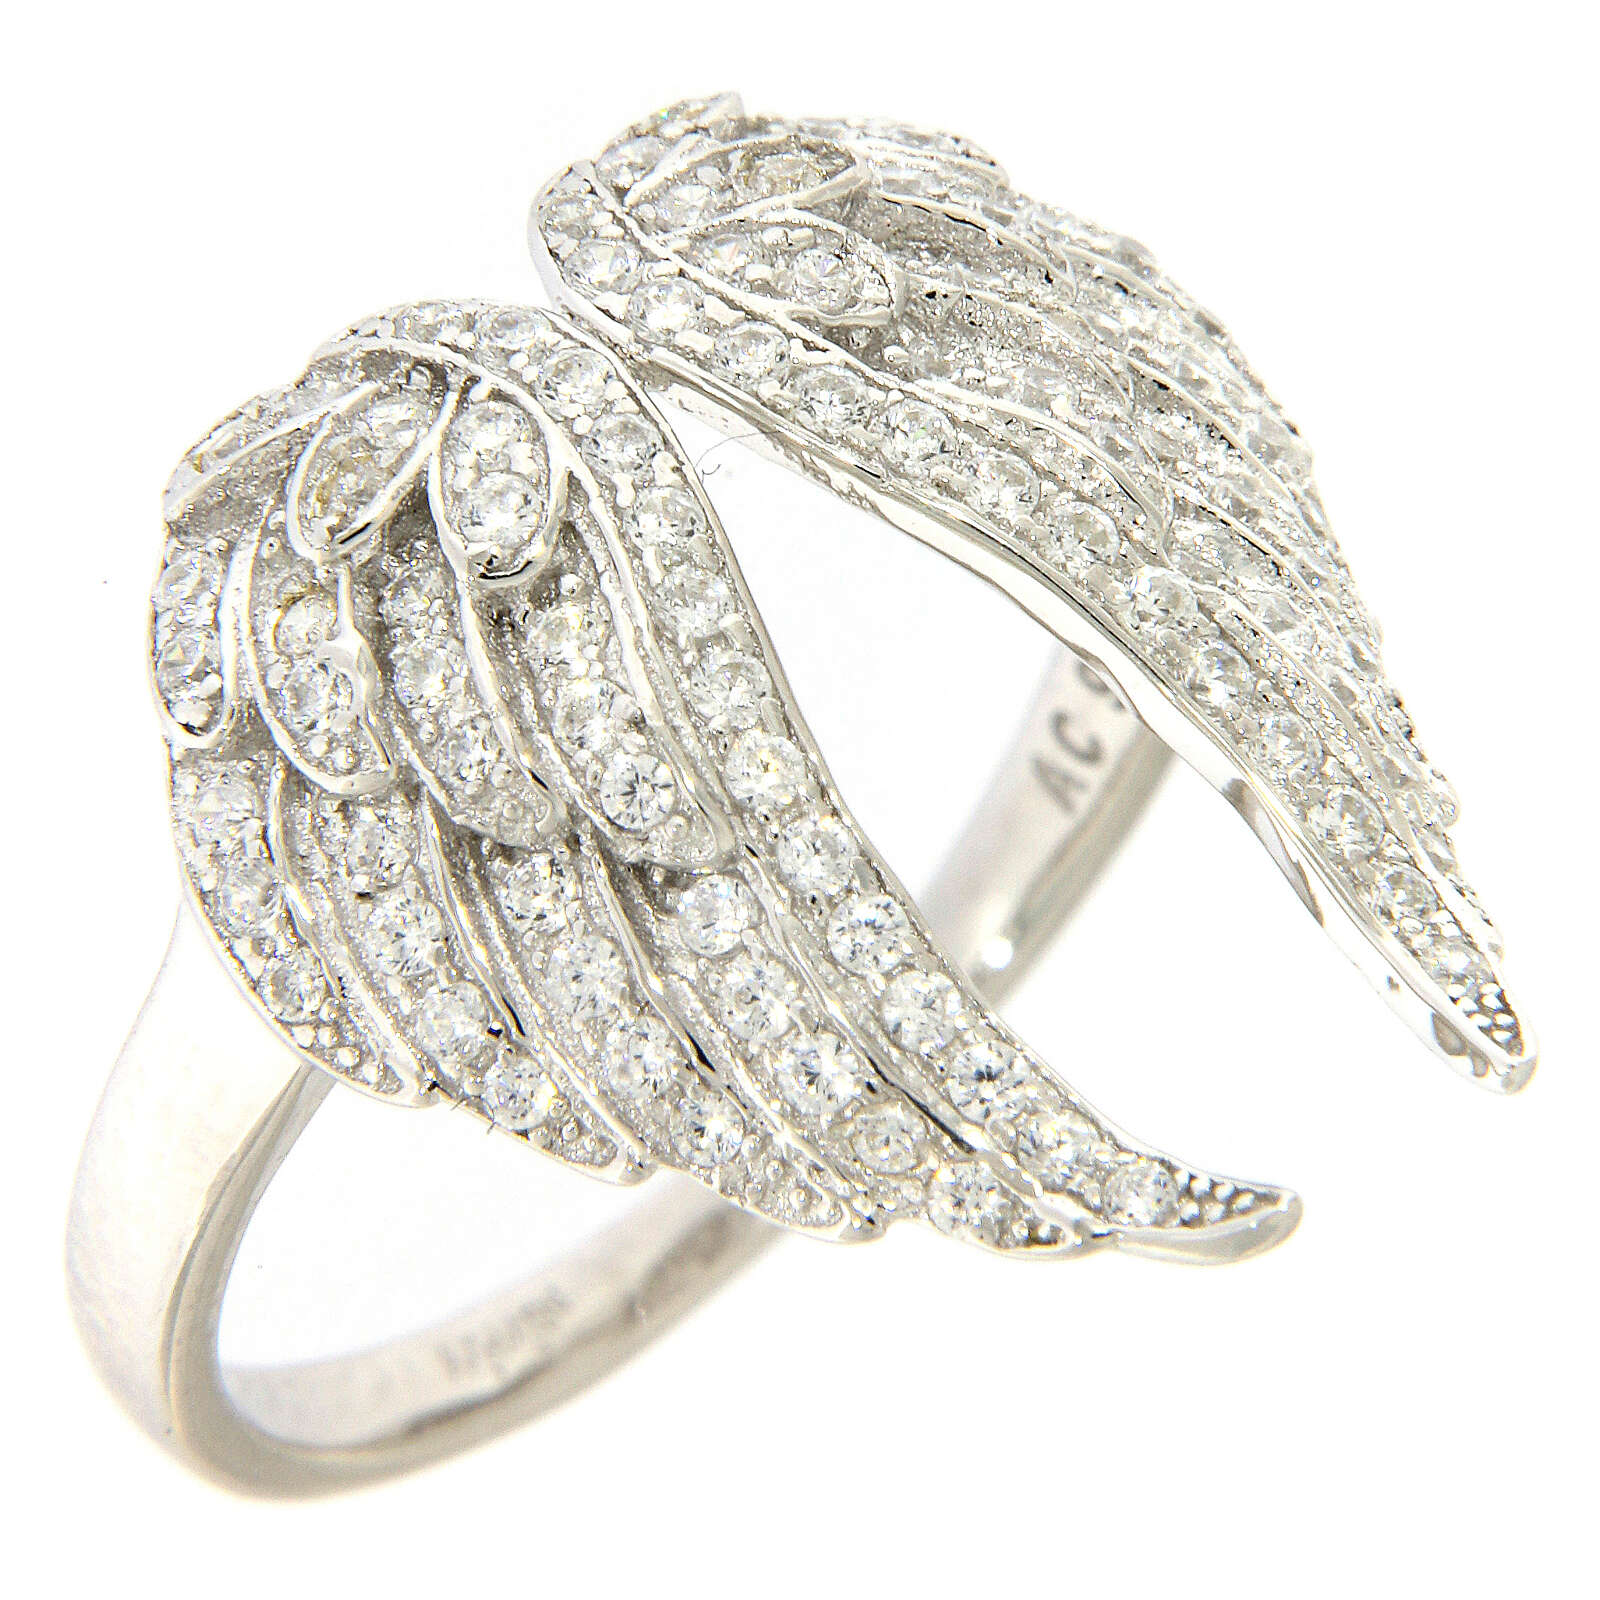 AMEN ring wings and zircons 925 silver 3